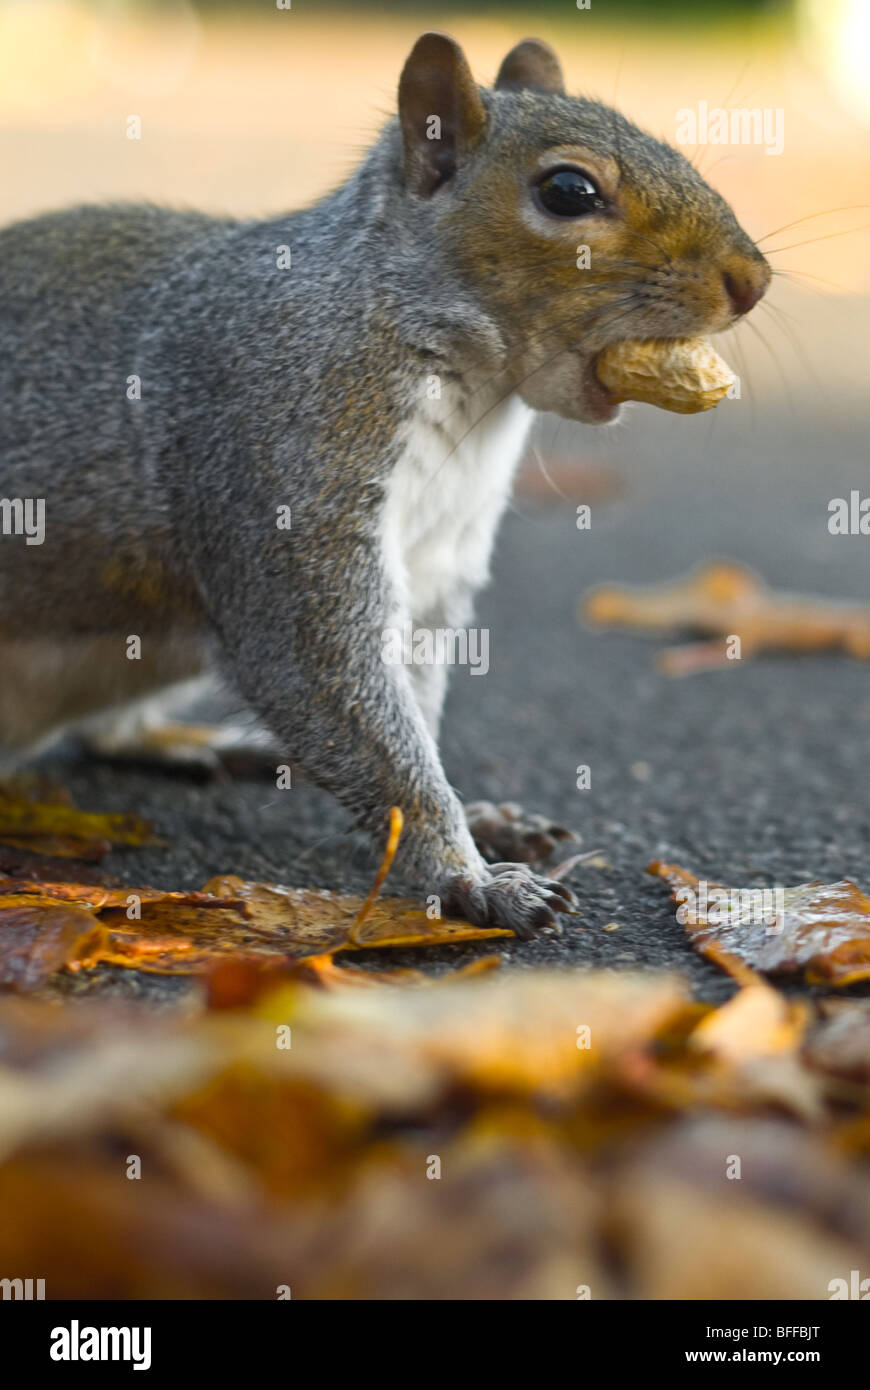 Squirrel in east London feeds on some nuts in autumn - Stock Image